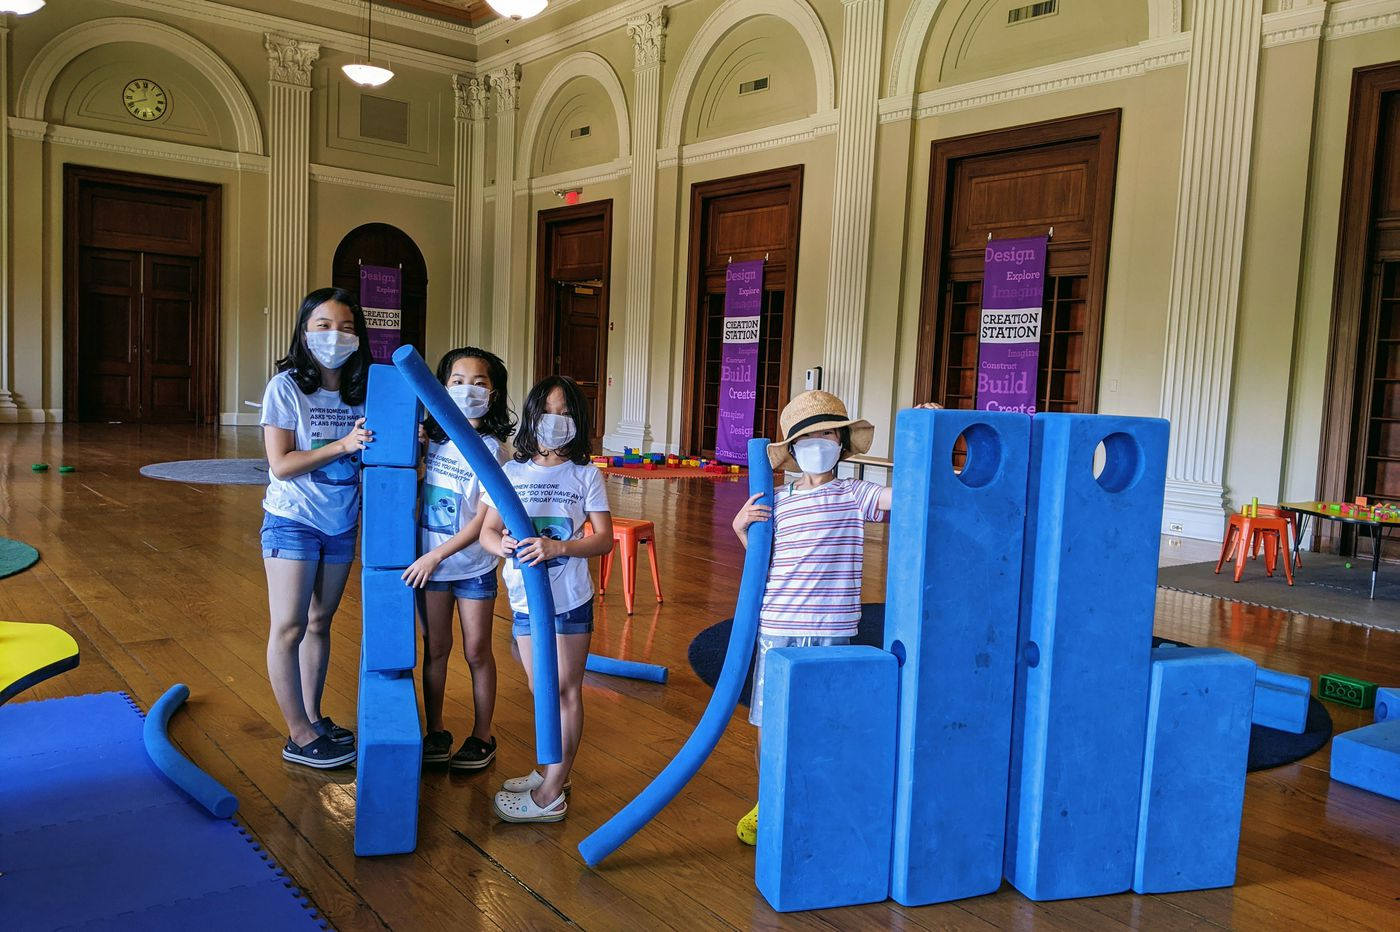 Fun for Philly families this week: Celebrate fall and the planet, plus a new Franklin Institute play space